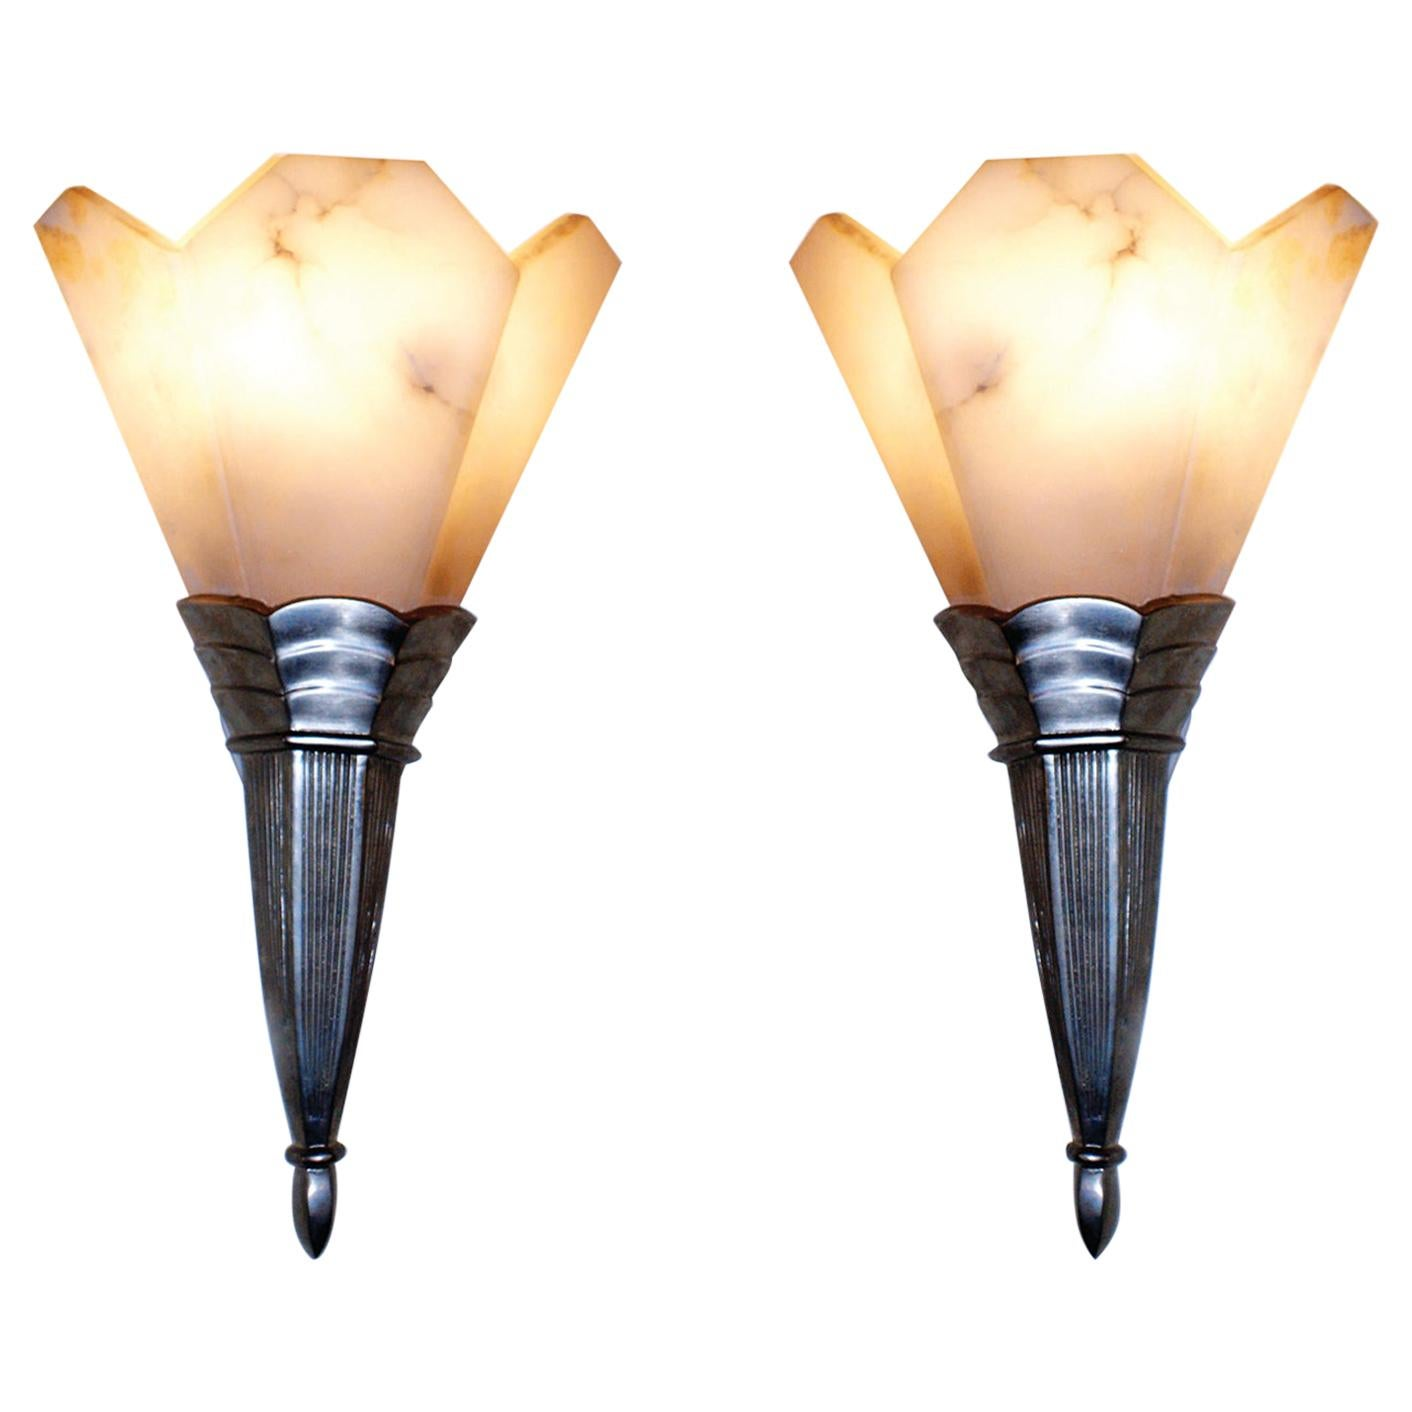 Pair of French Art Deco Sconces Attributed to Albert Cheuret